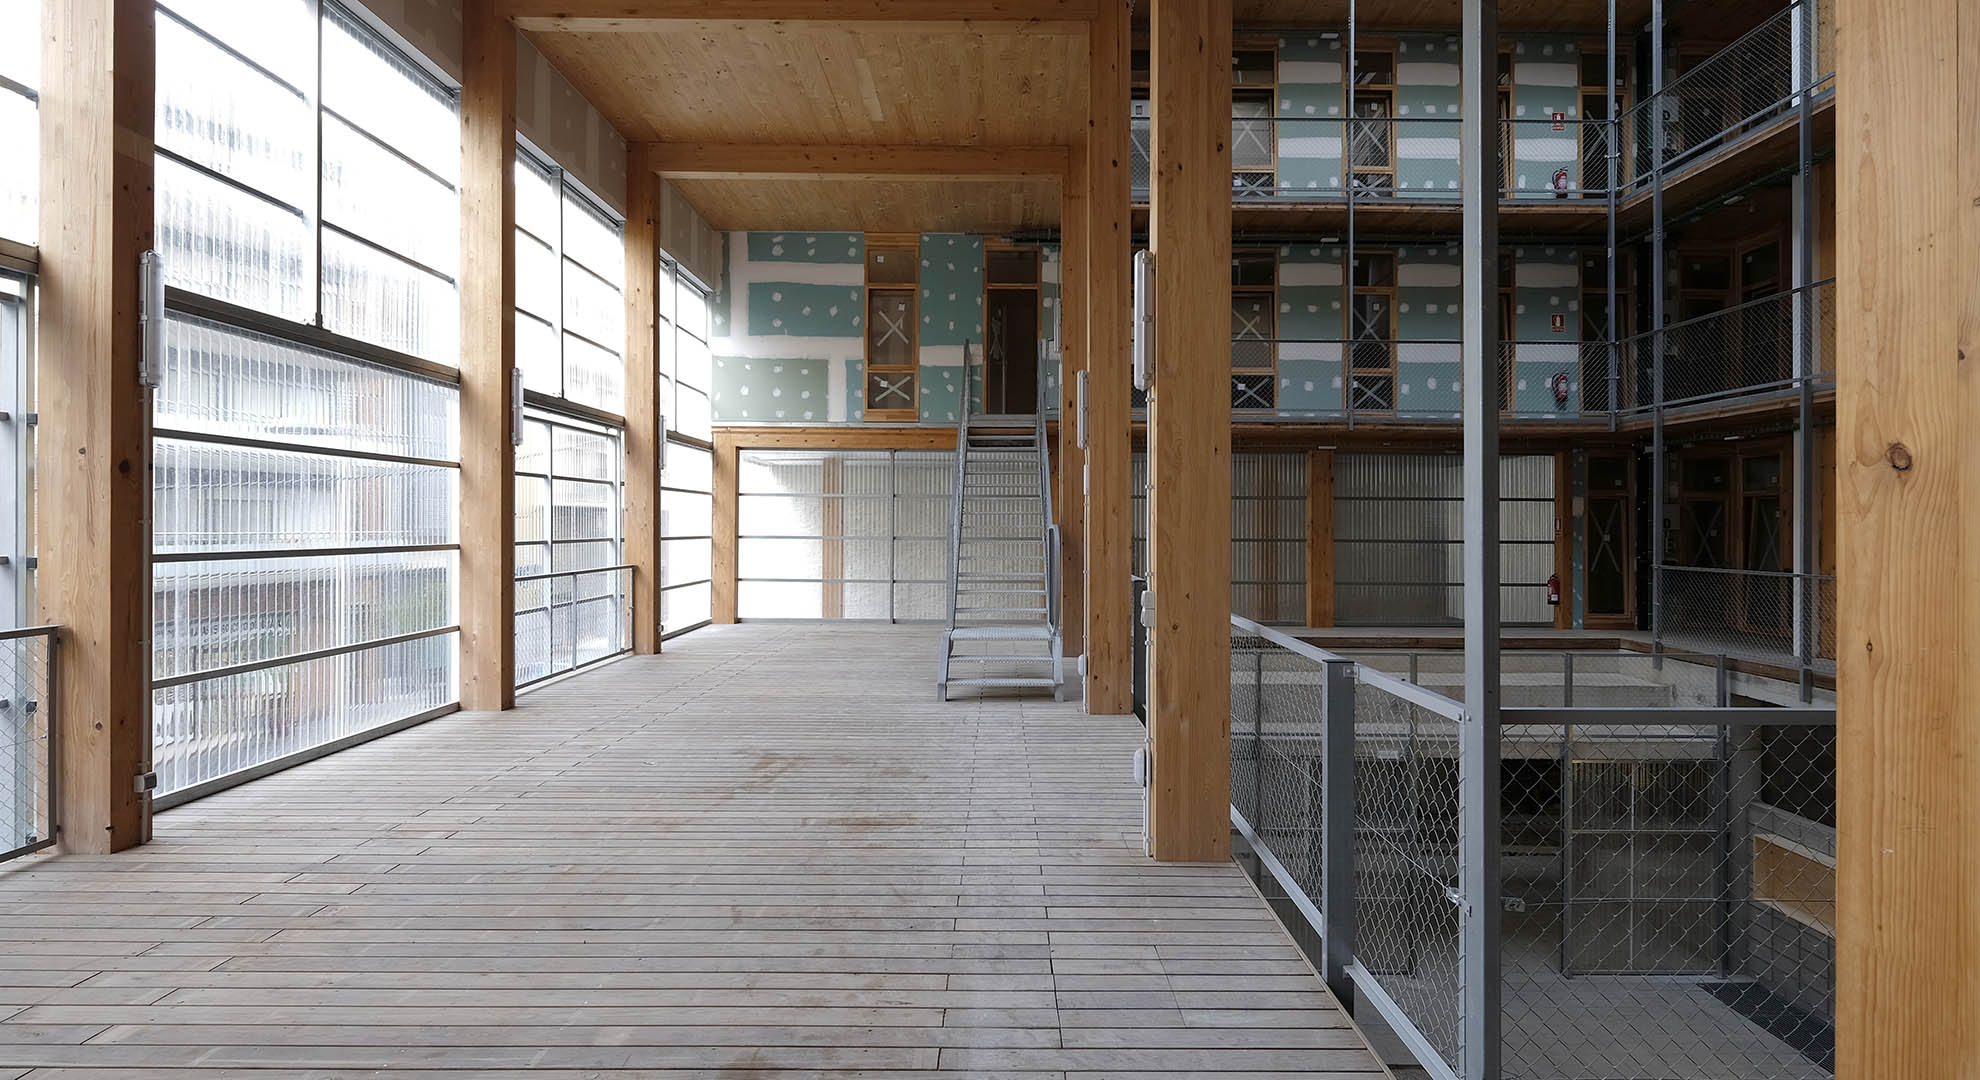 La Borda Housing Cooperative Interior built with CLT